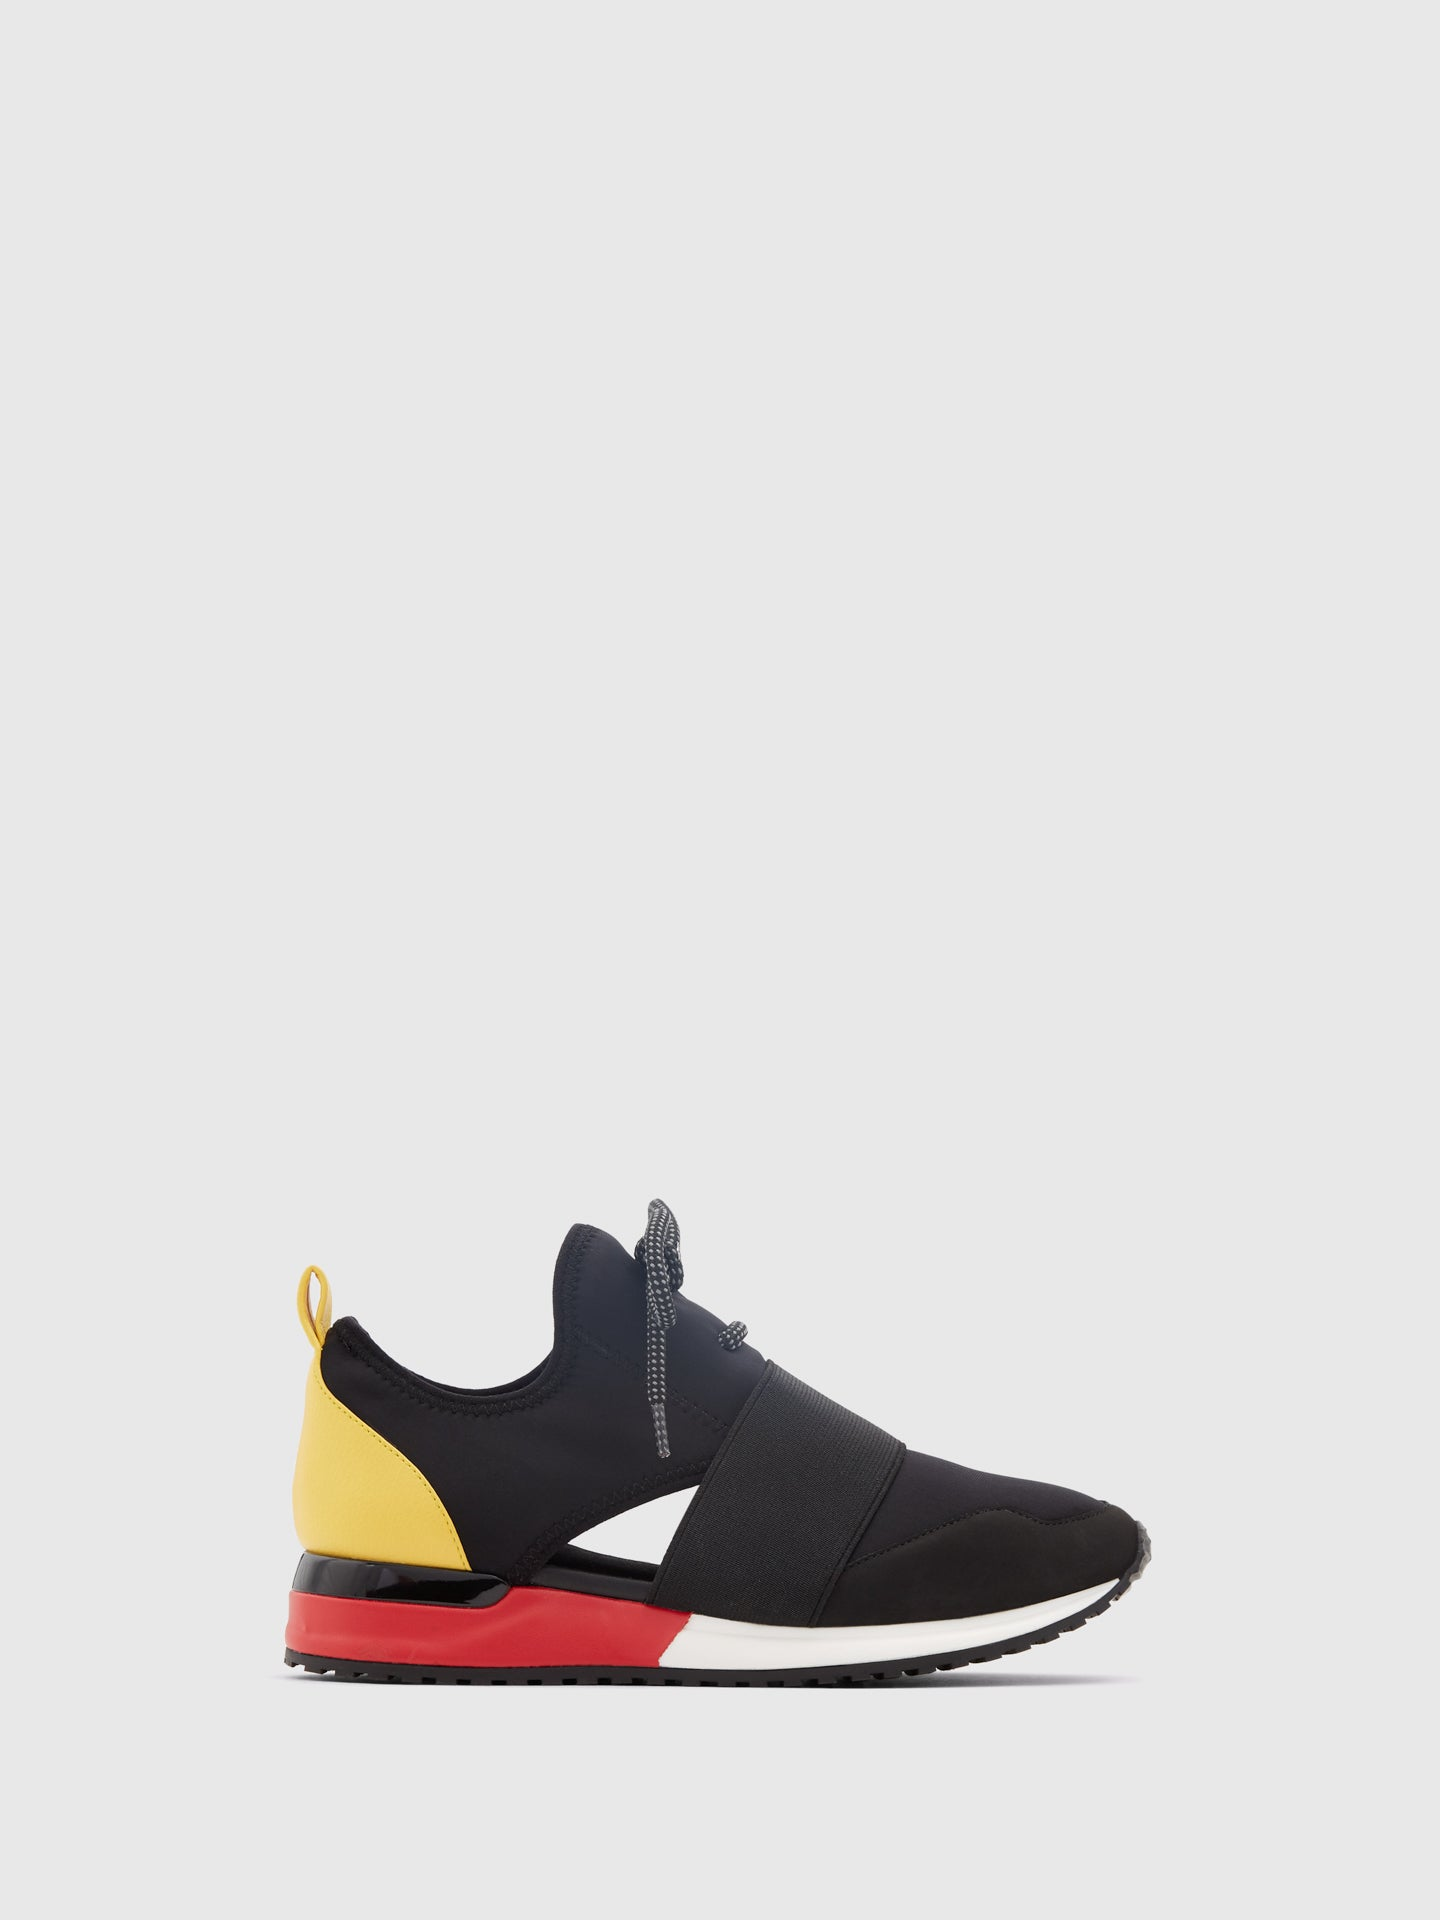 Aldo Black Slip-on Trainers